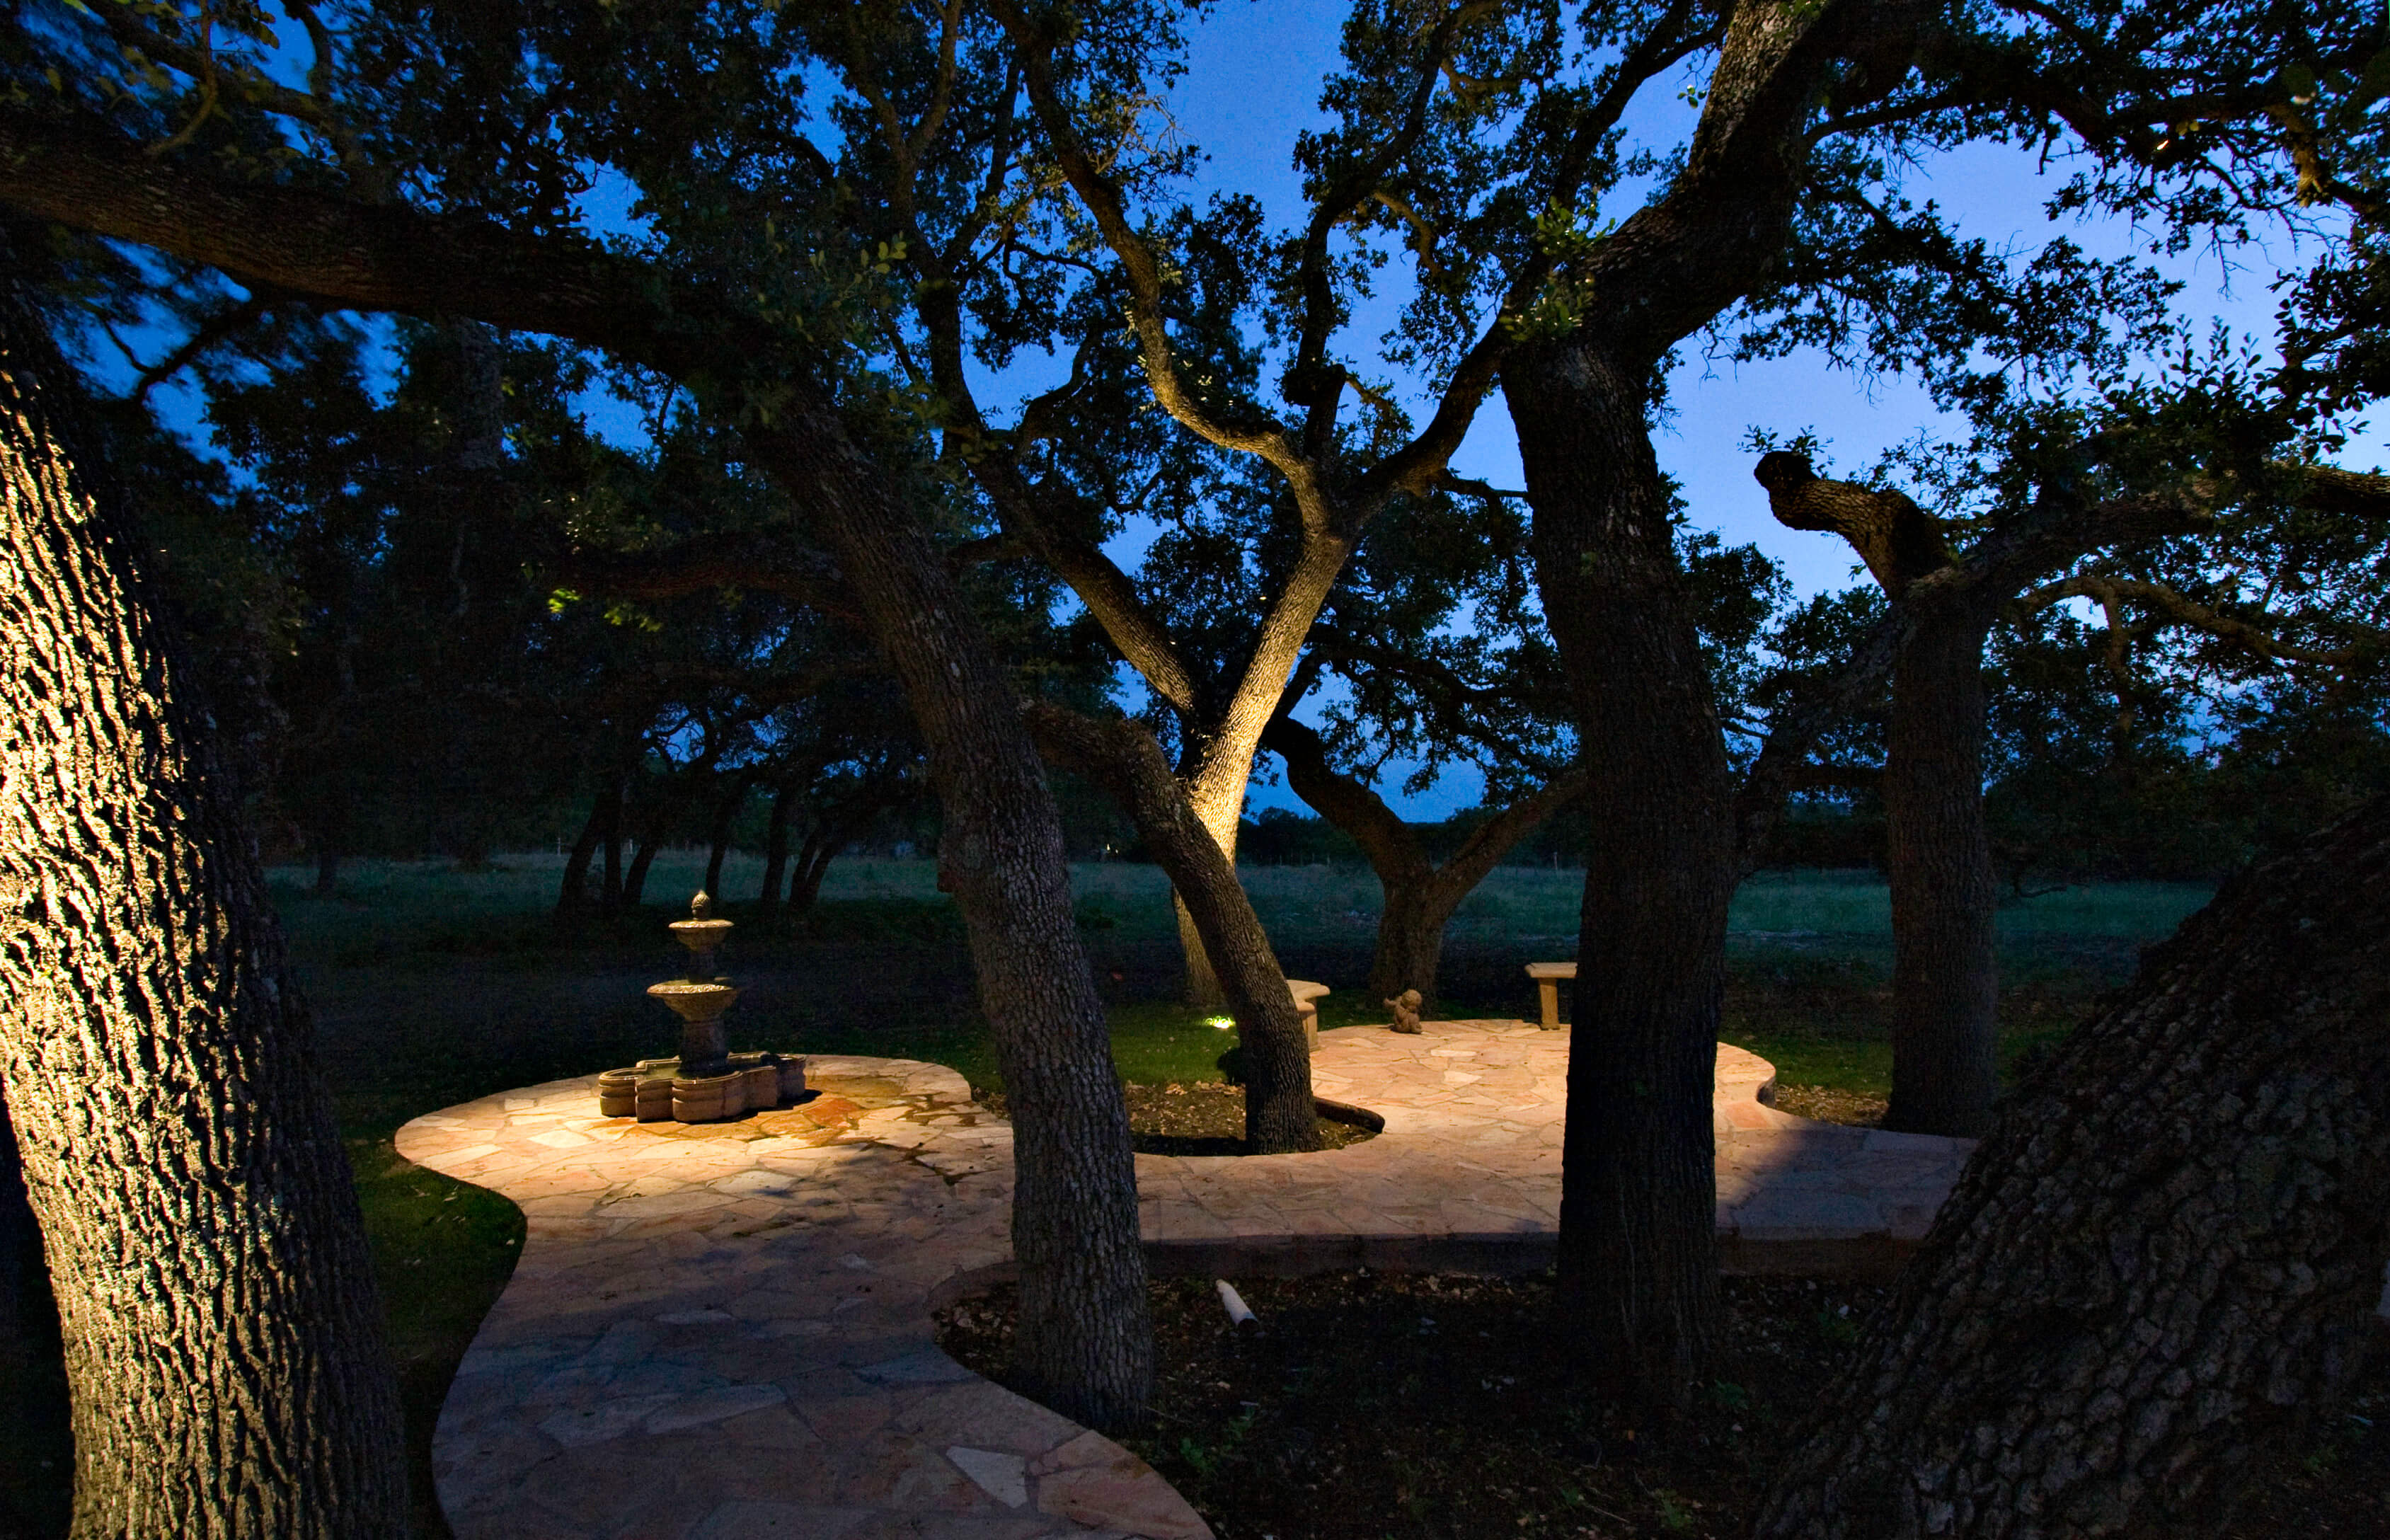 Outdoor patio area with lighting